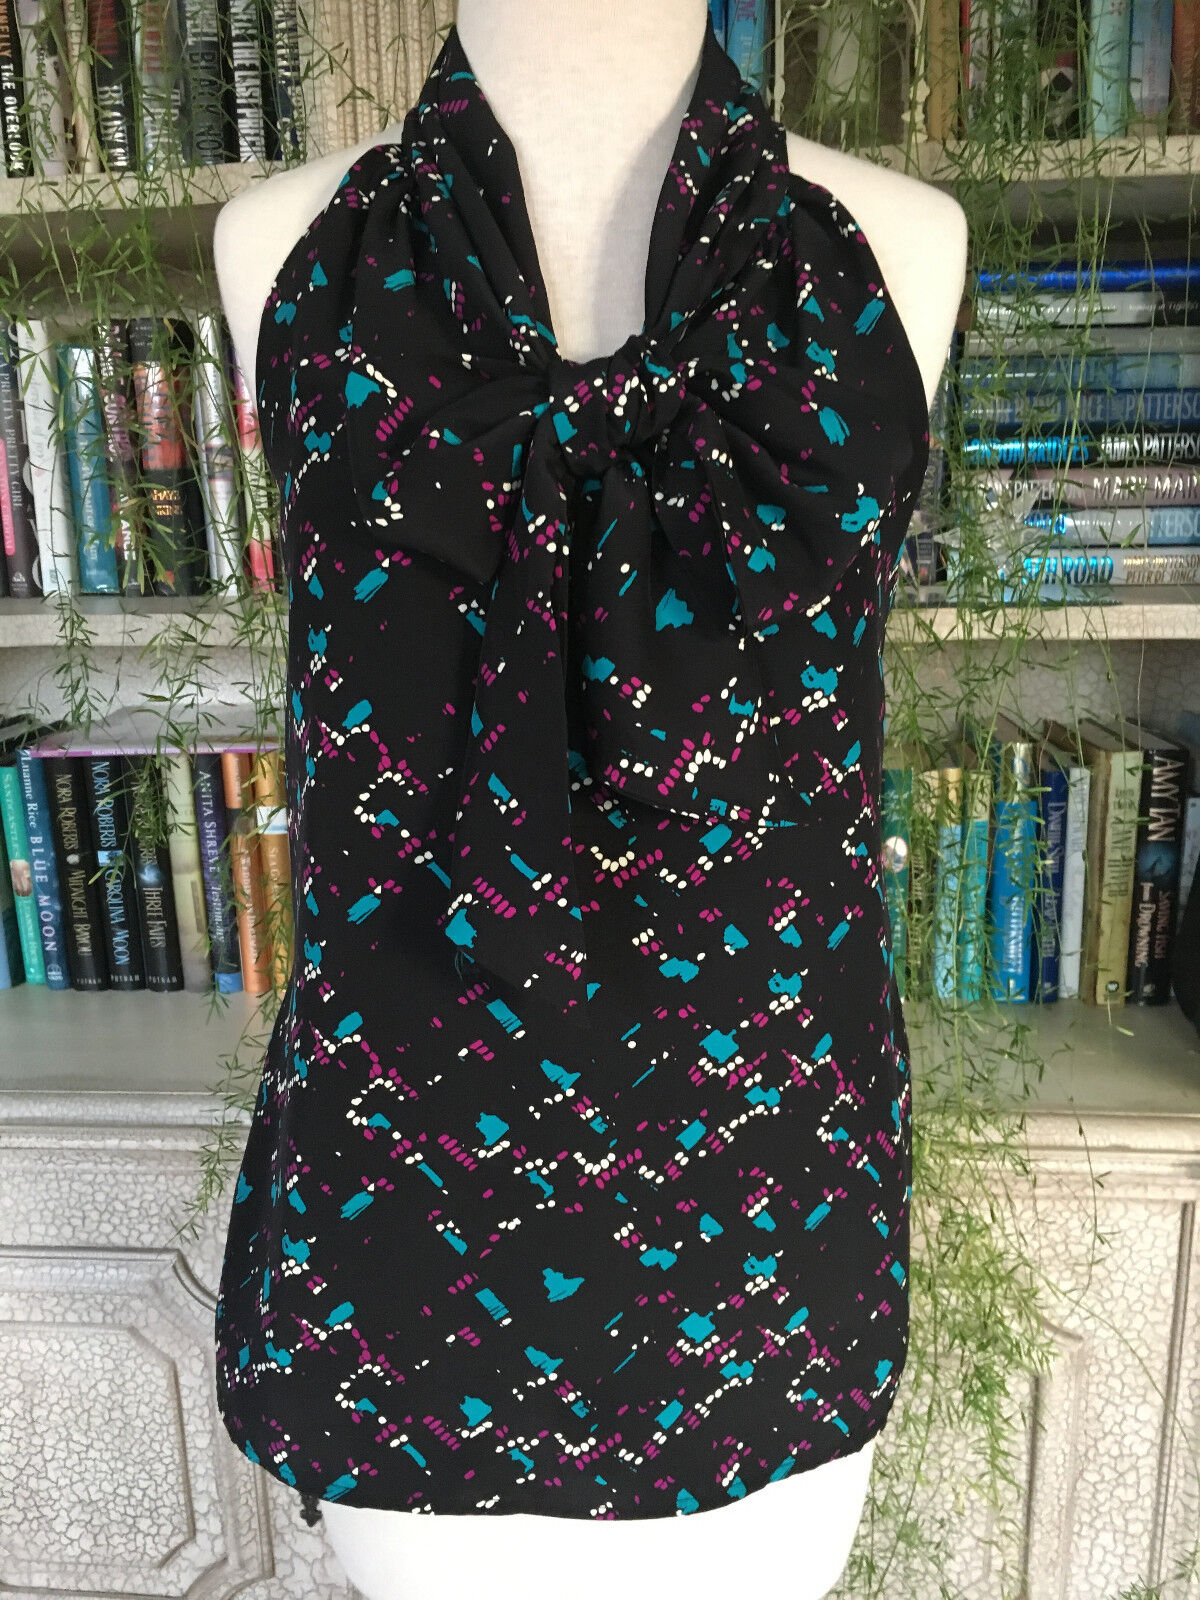 Britt Ryan Sleeveless Top with Front Tie, Size S.  NWOT.